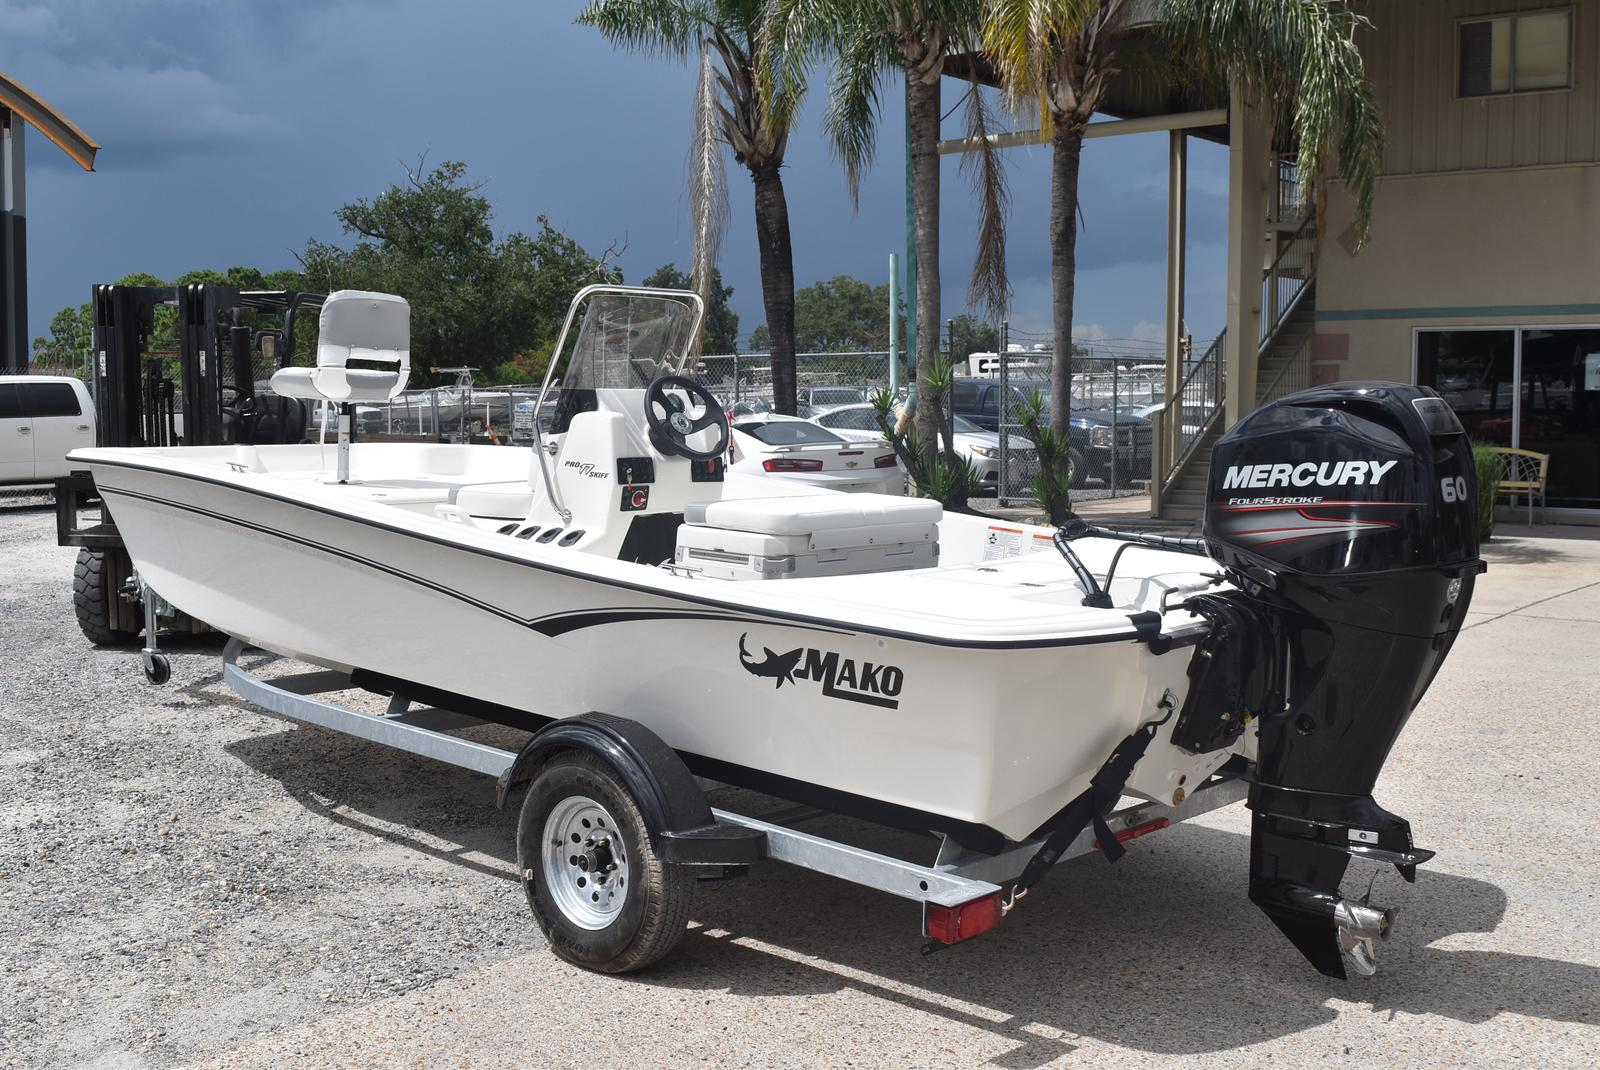 2020 Mako boat for sale, model of the boat is Pro Skiff 17, 75 ELPT & Image # 160 of 702